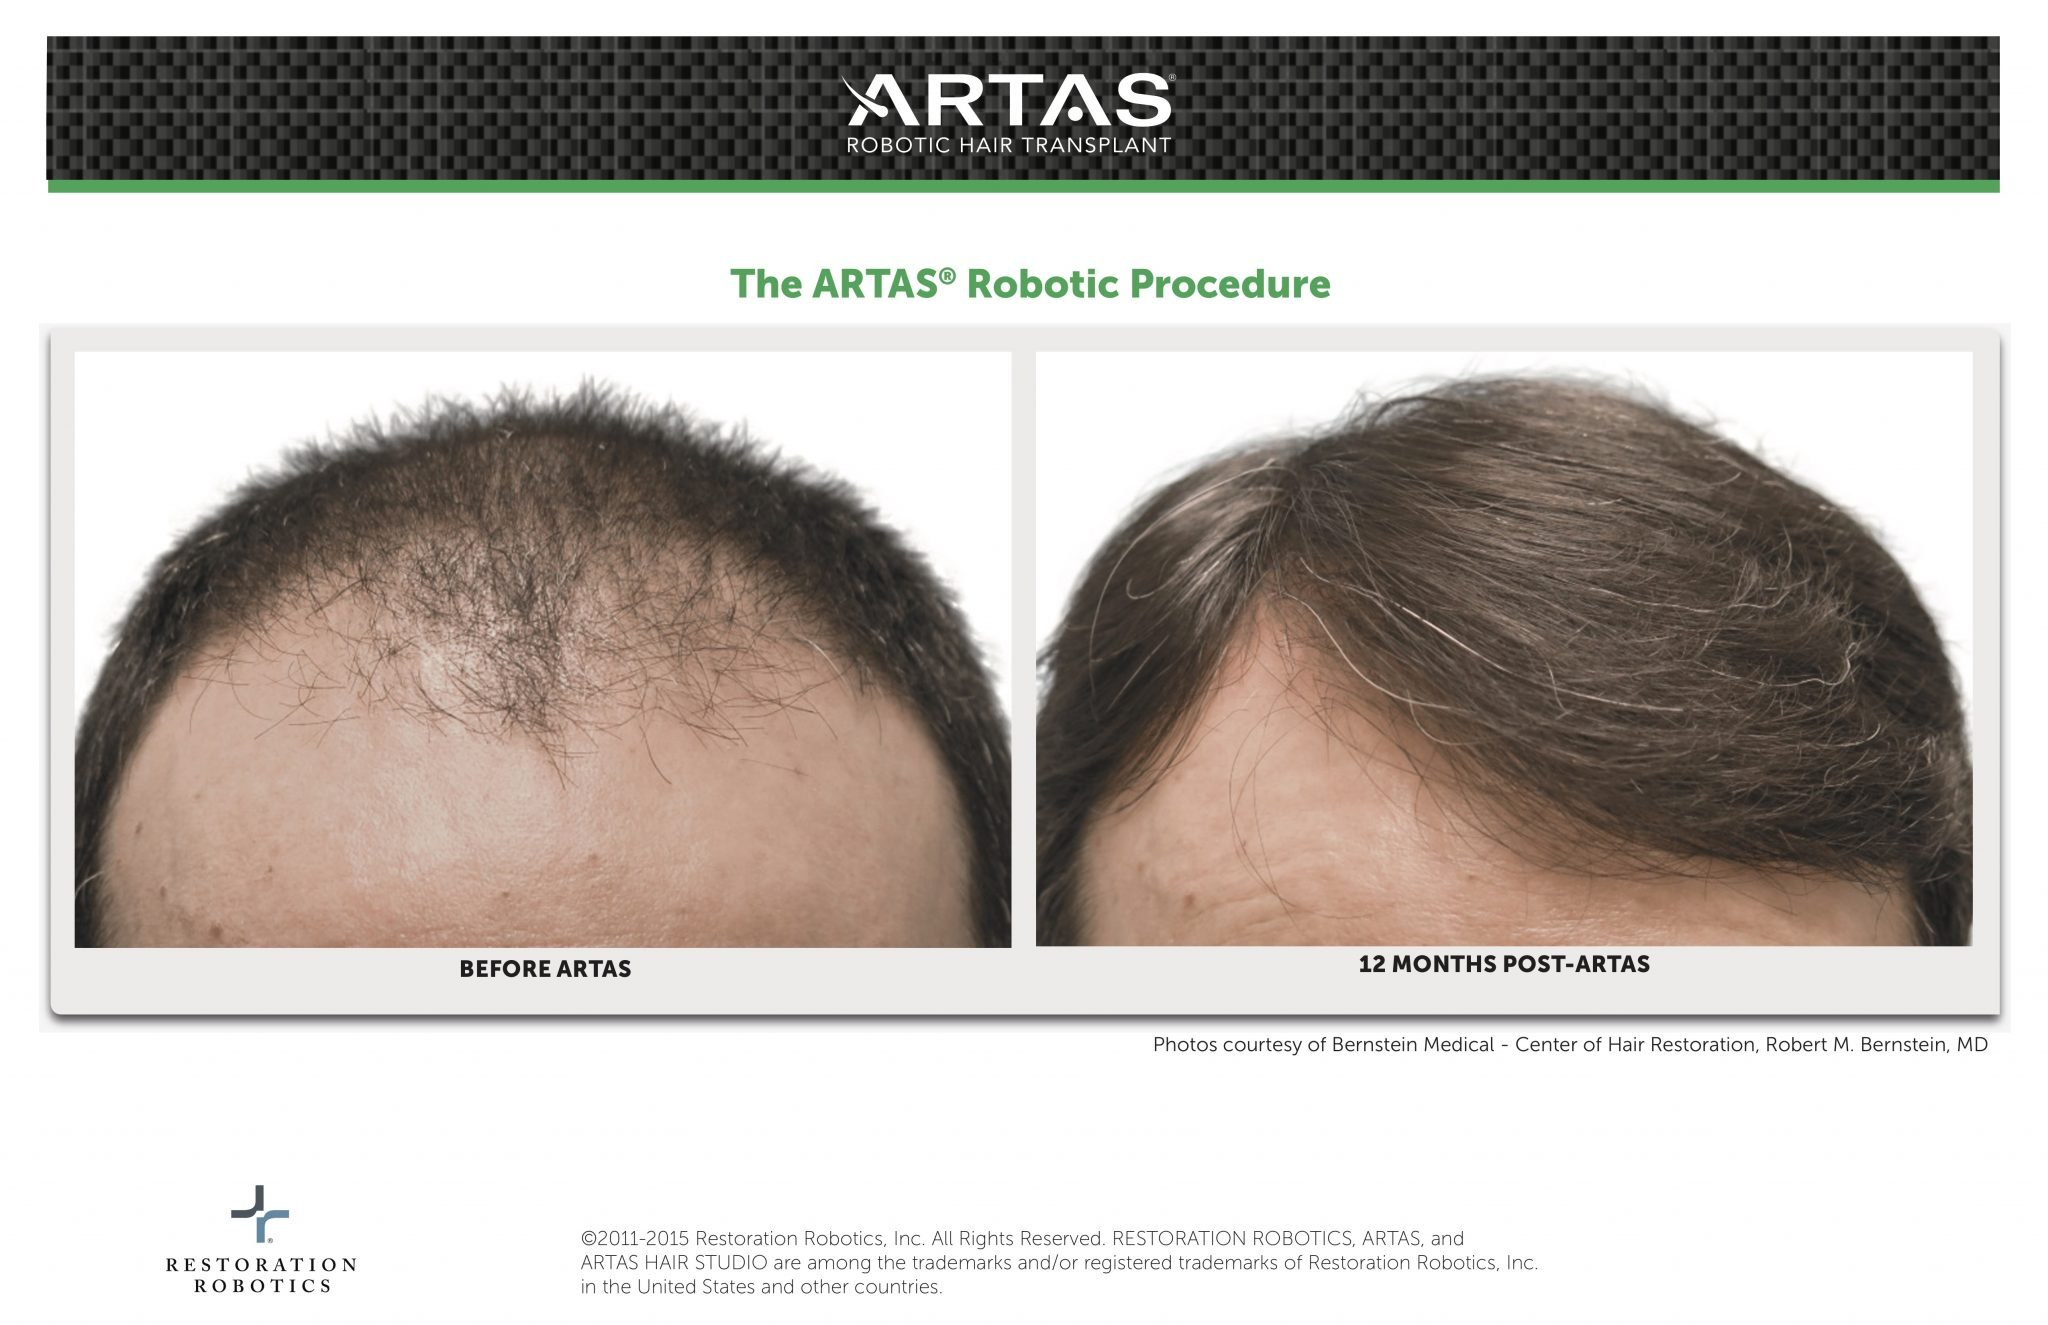 ARTAS Before & After Robotic Hair Transplant Procedure By Dr. Robert M. Bernstein